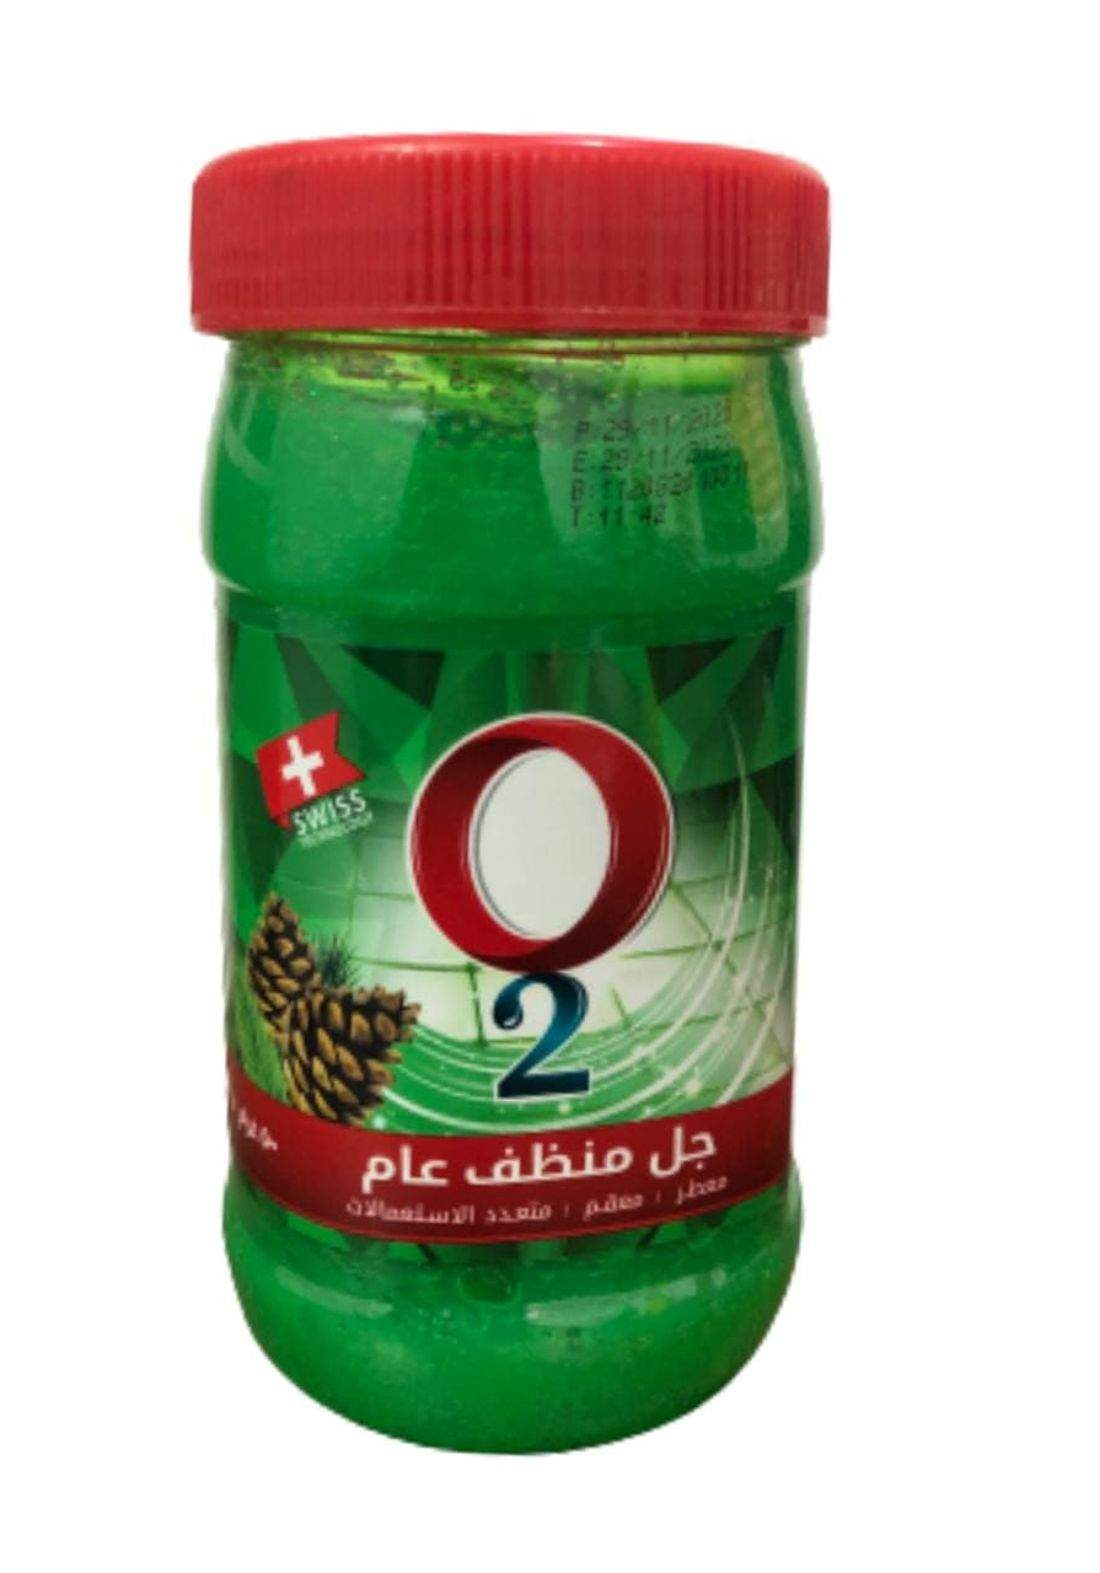 O2 perfumed active cleaner gel 500g او تو جل منظف عام